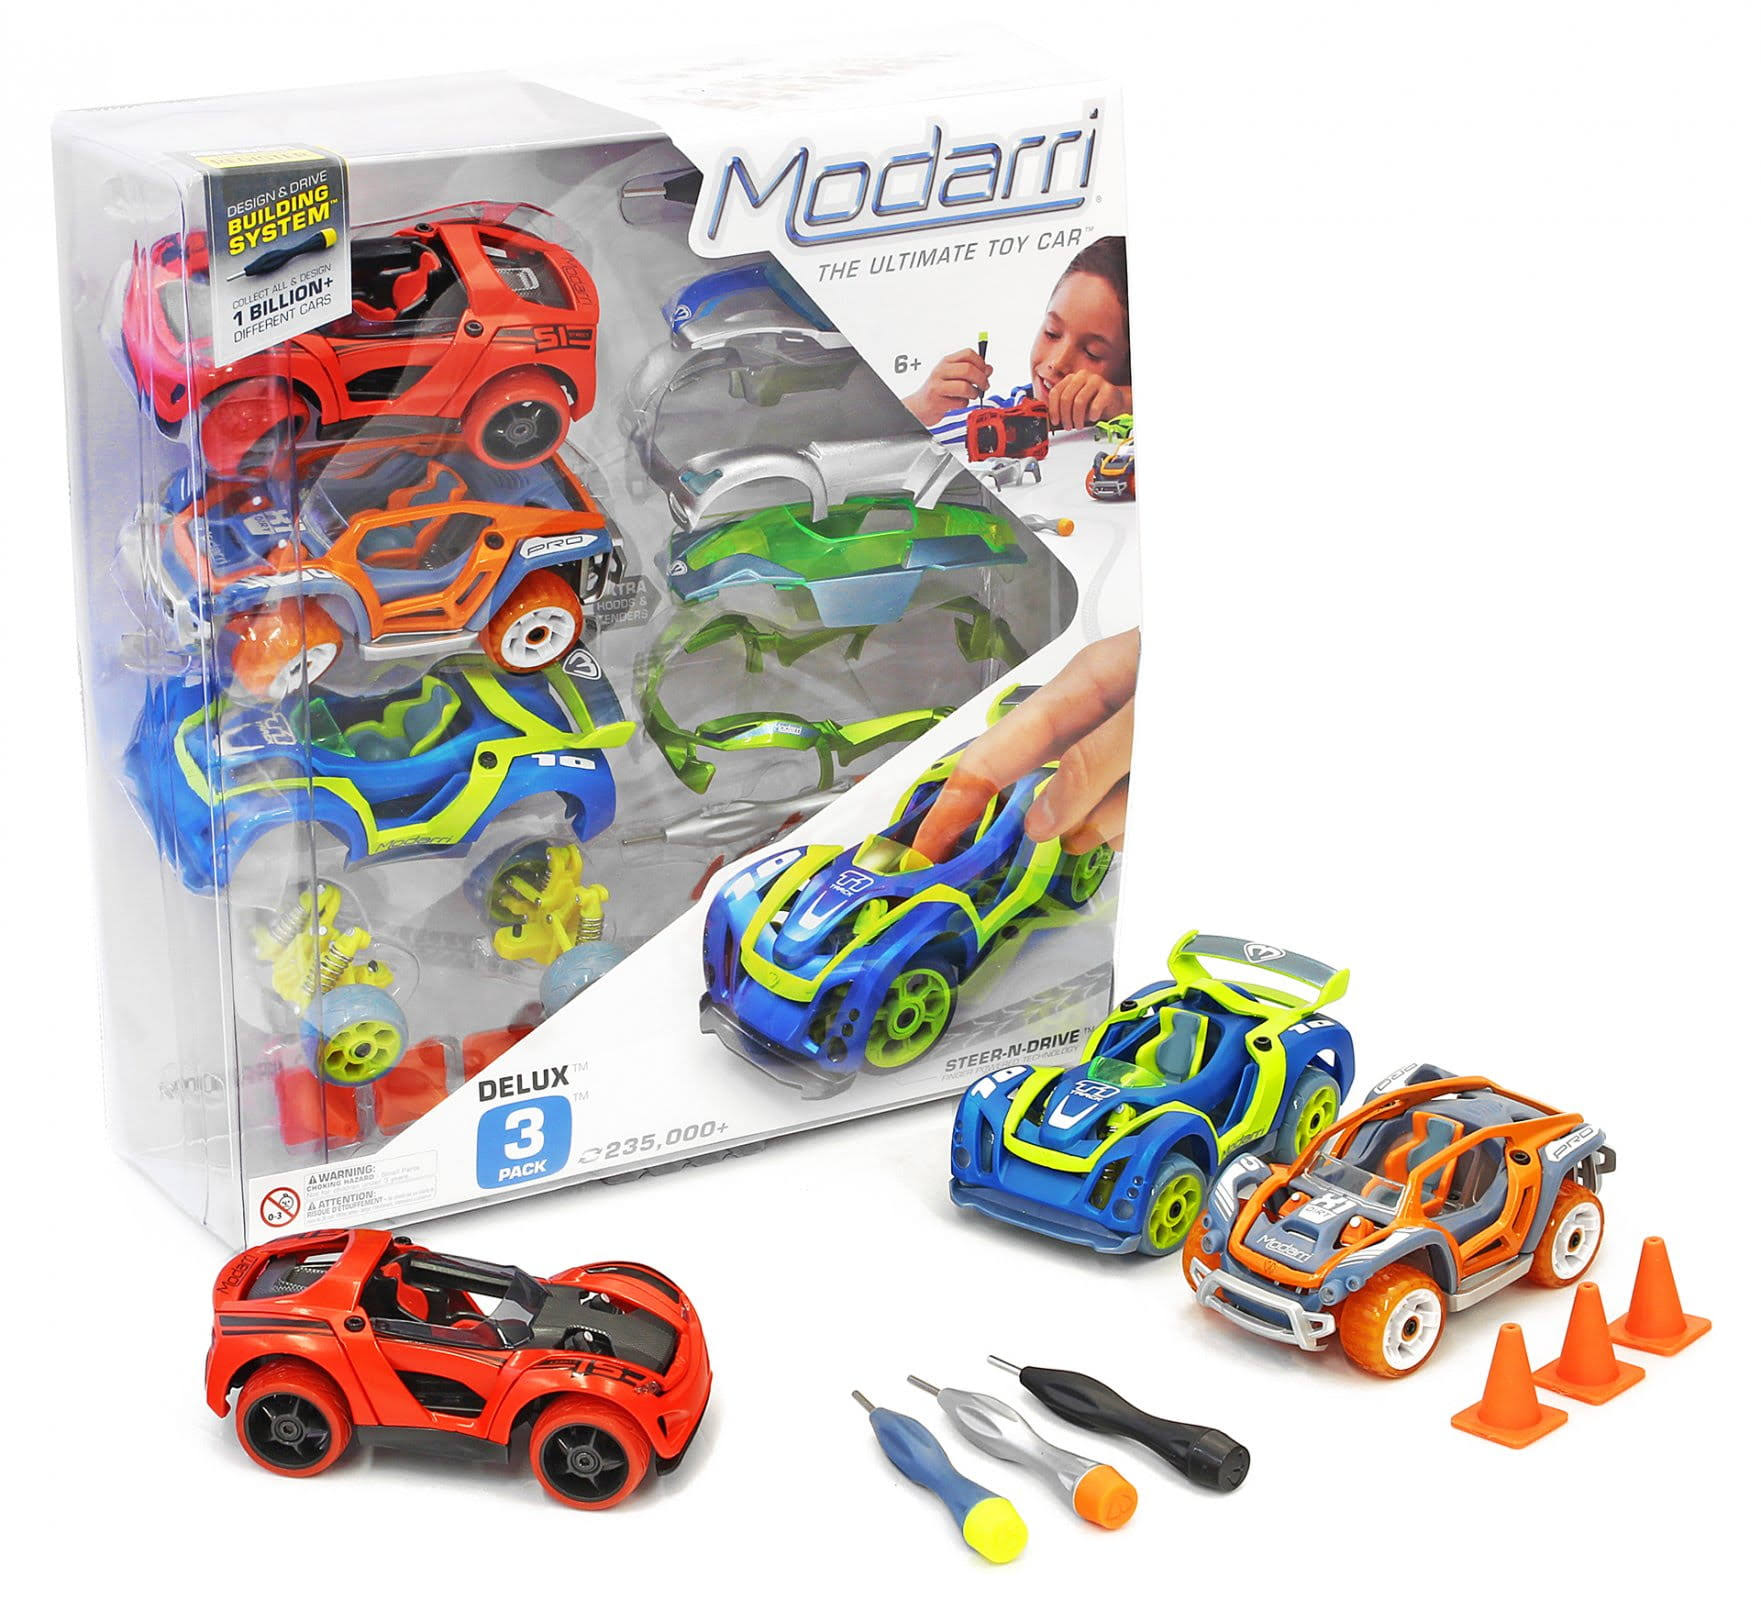 Thoughtfull Toys Inc Delux Car Set - x3